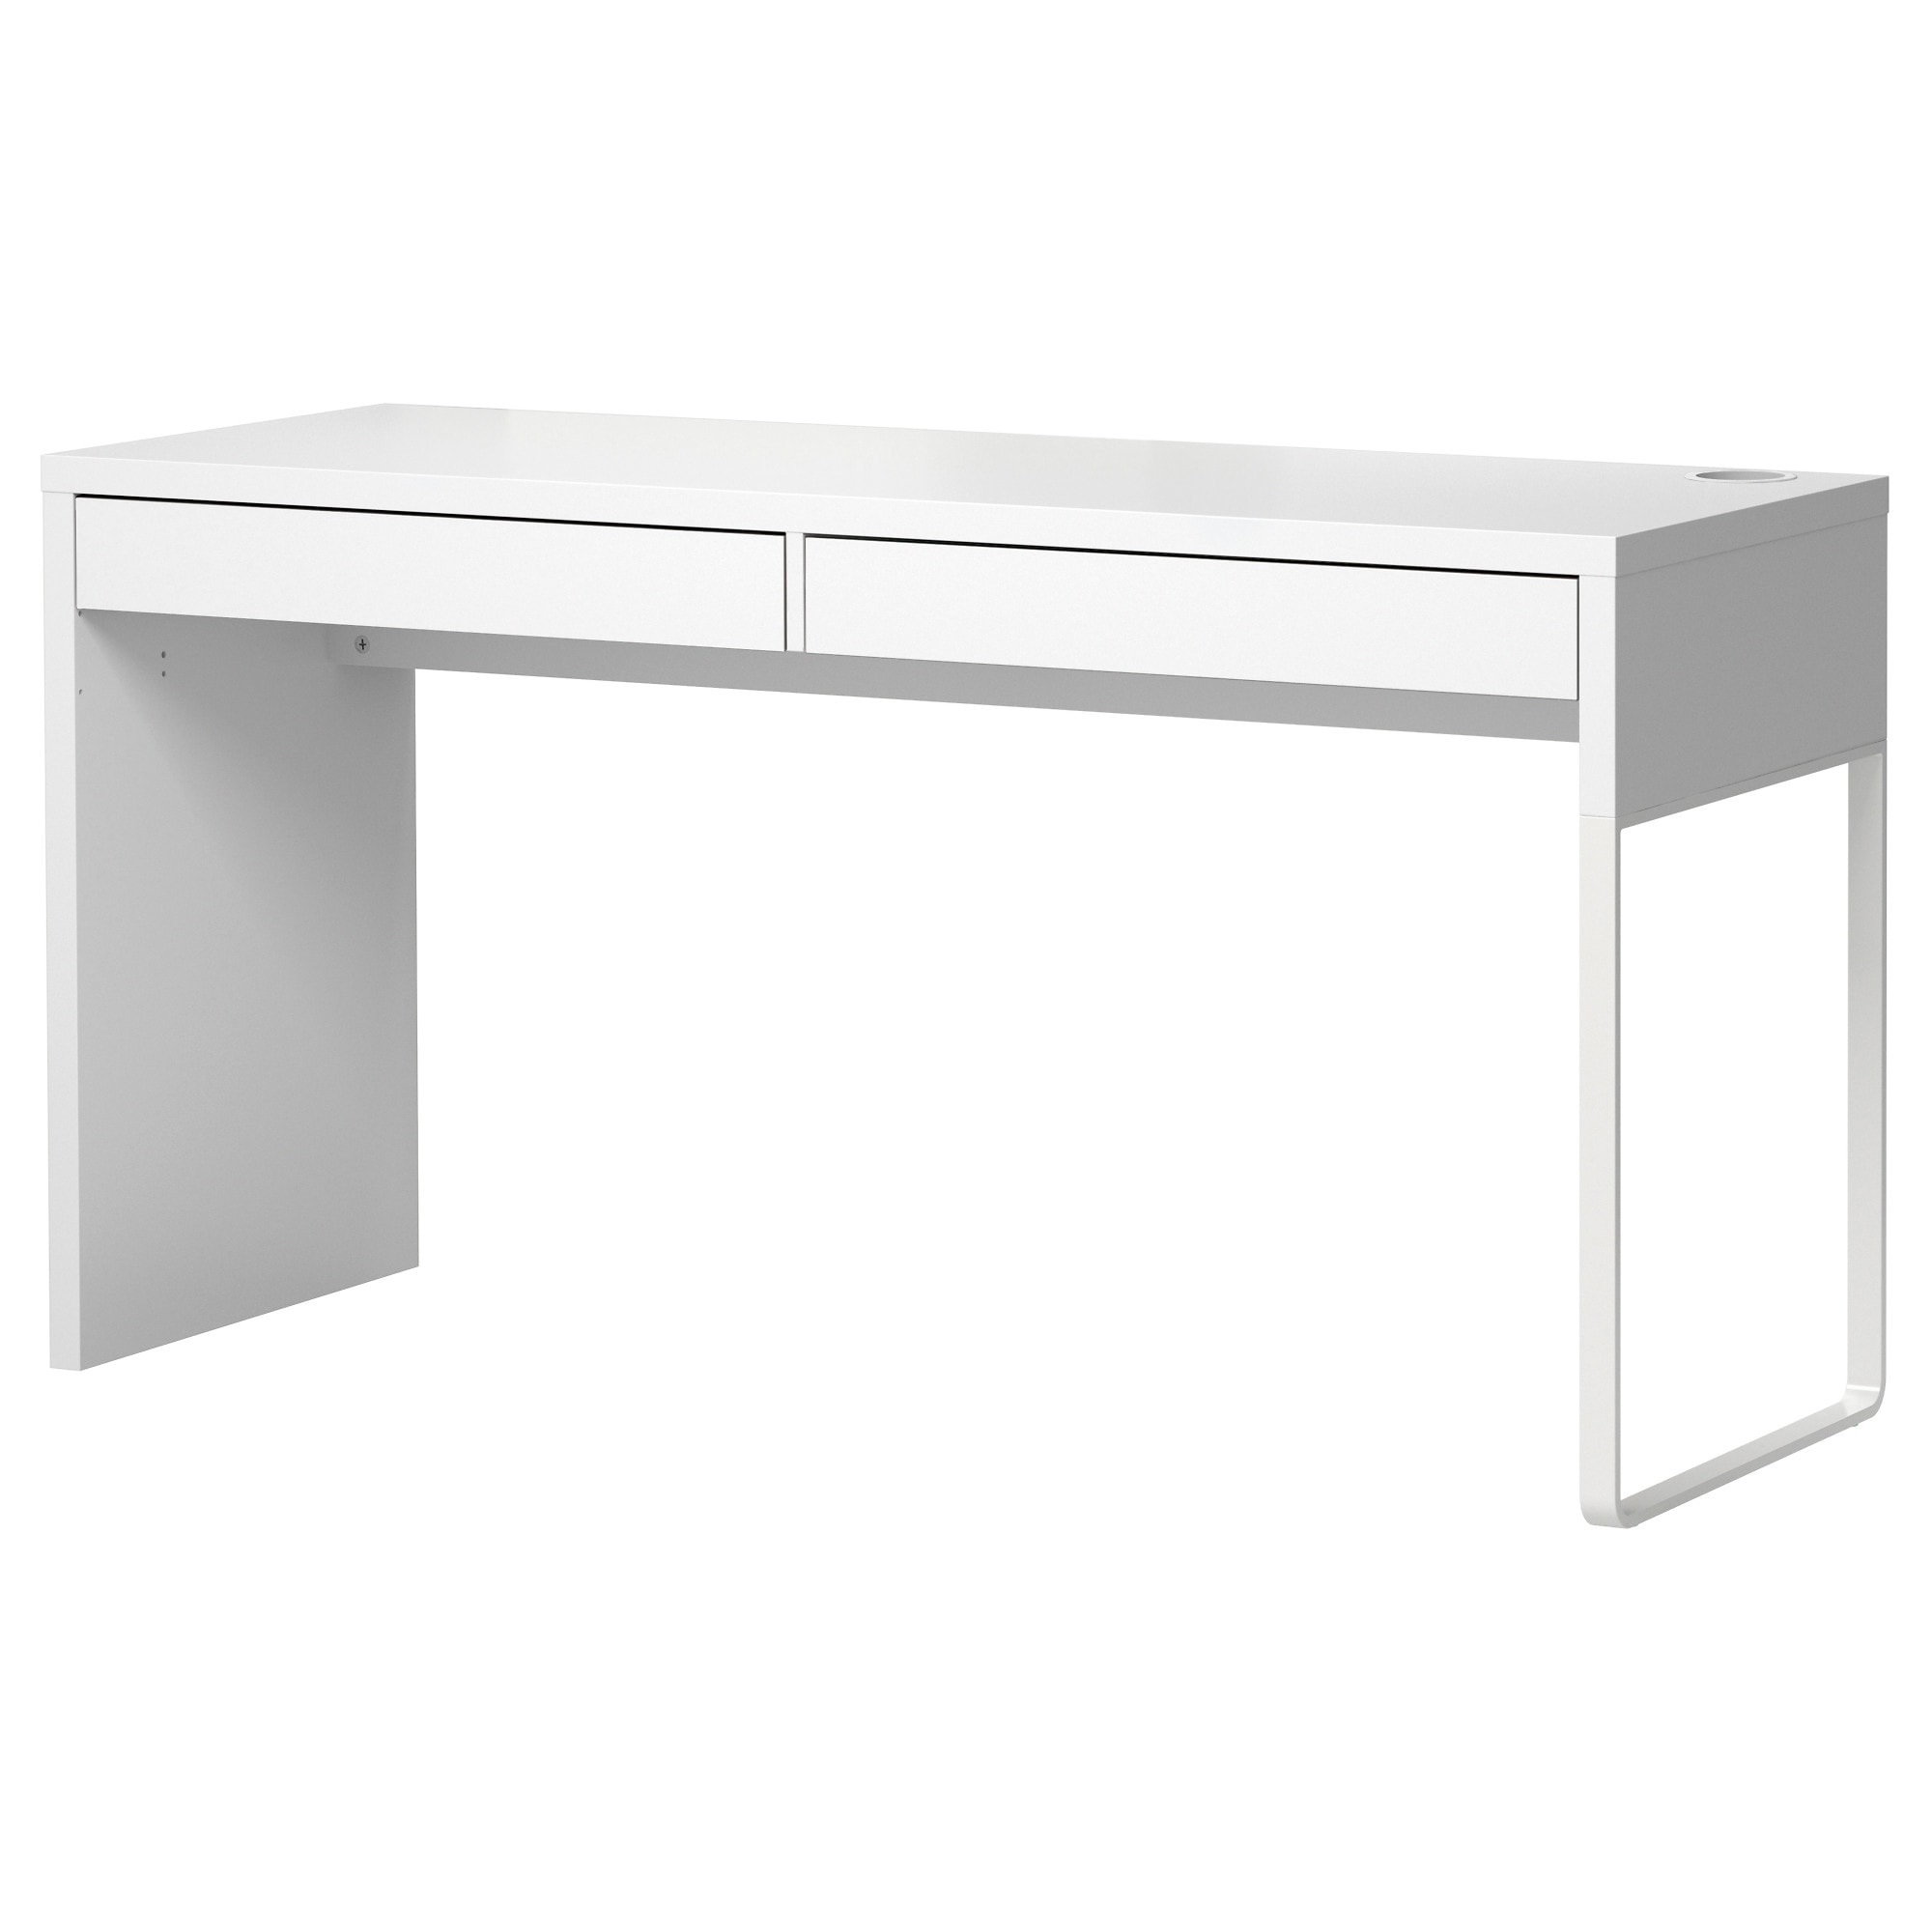 ikea office table. 2018-04-19T05:00-07:00 Ikea Office Table